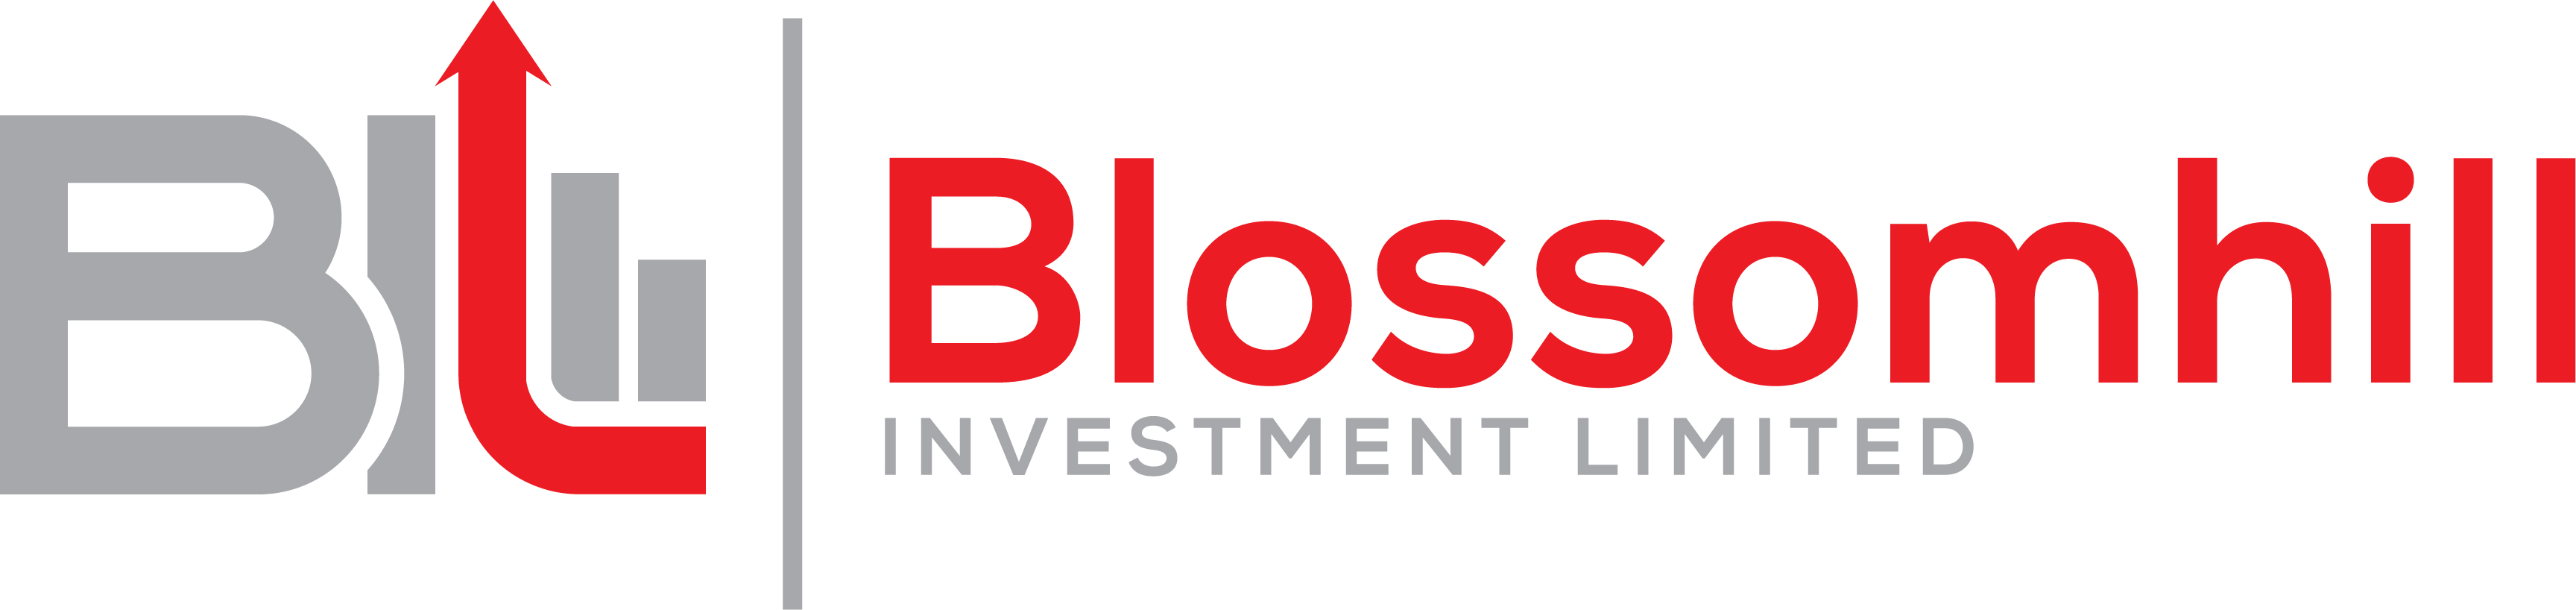 Blossomhill Investment Limited Helping Clients Achieve Financial Aspirations